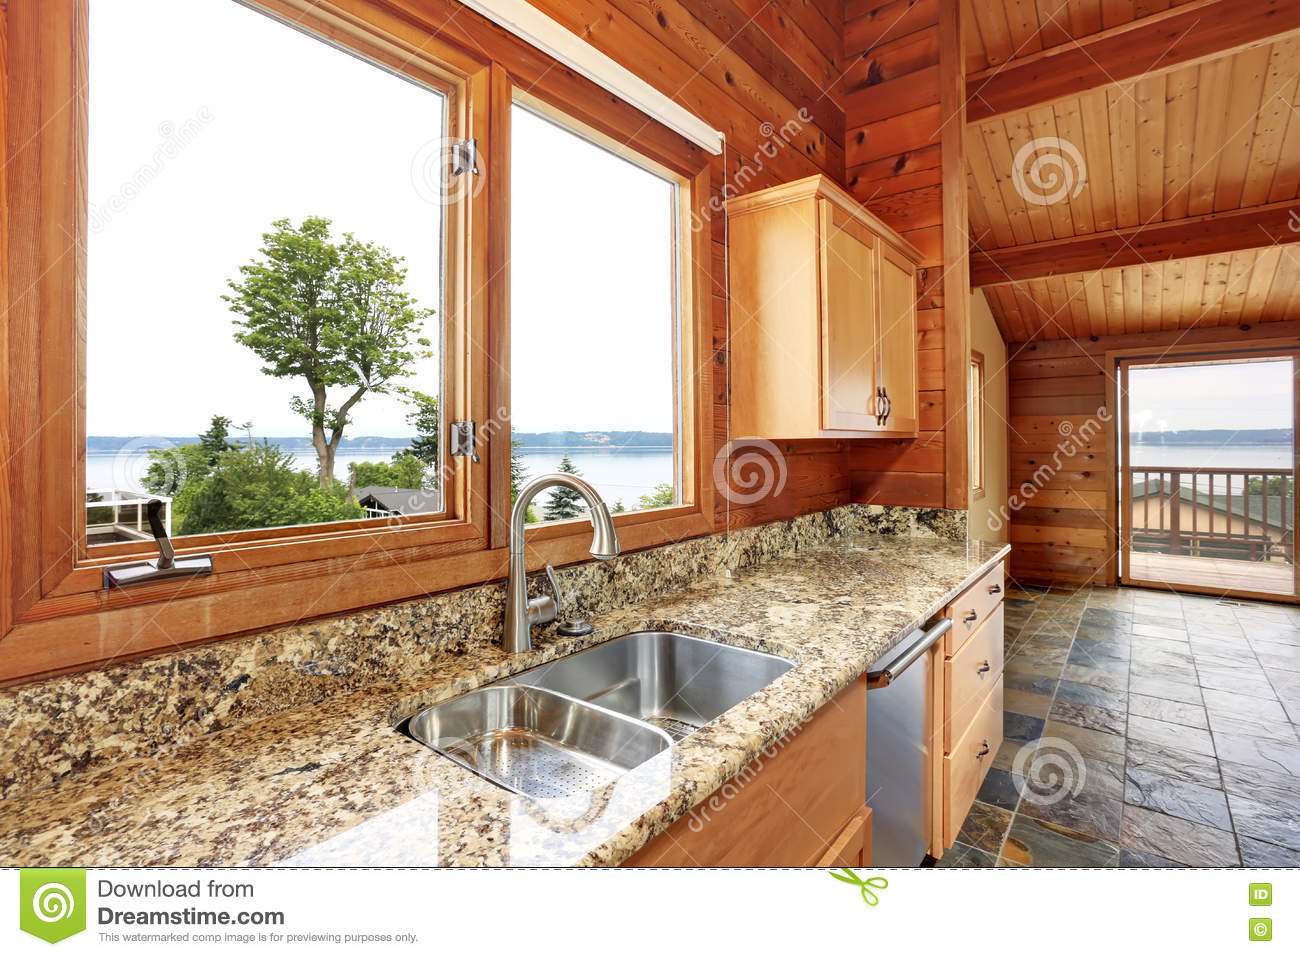 Download Wooden Trim Home With Open Floor Plan. Kitchen With Granite Counter Top. Stock Photo - Image of bright, house: 77303890